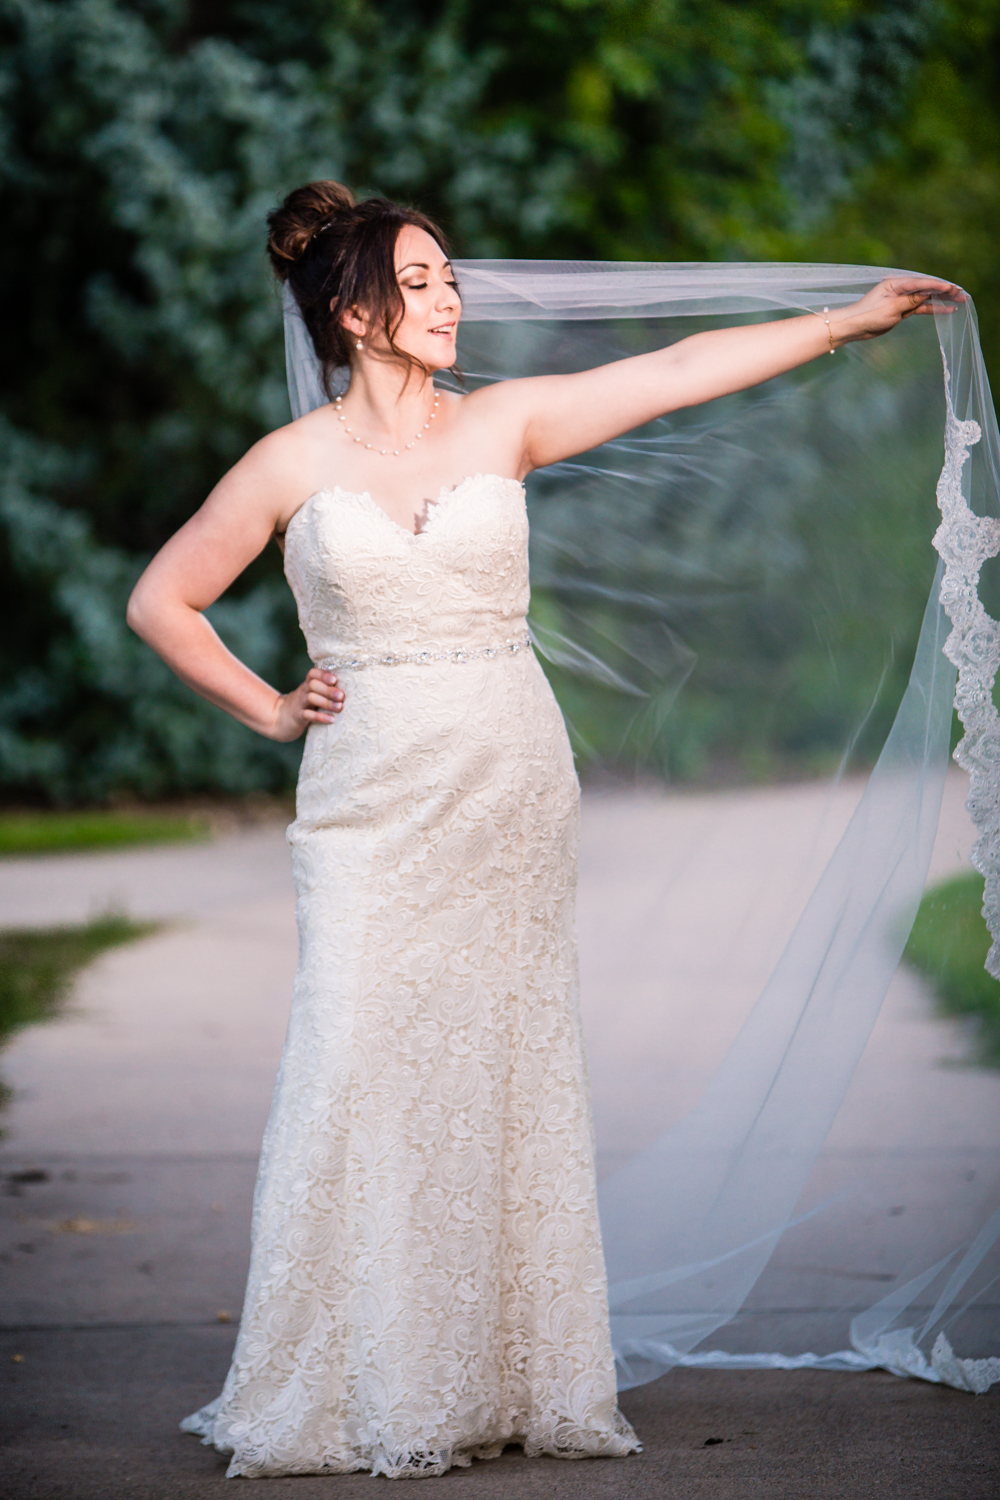 Denver wedding photographed by JMGant Photography.